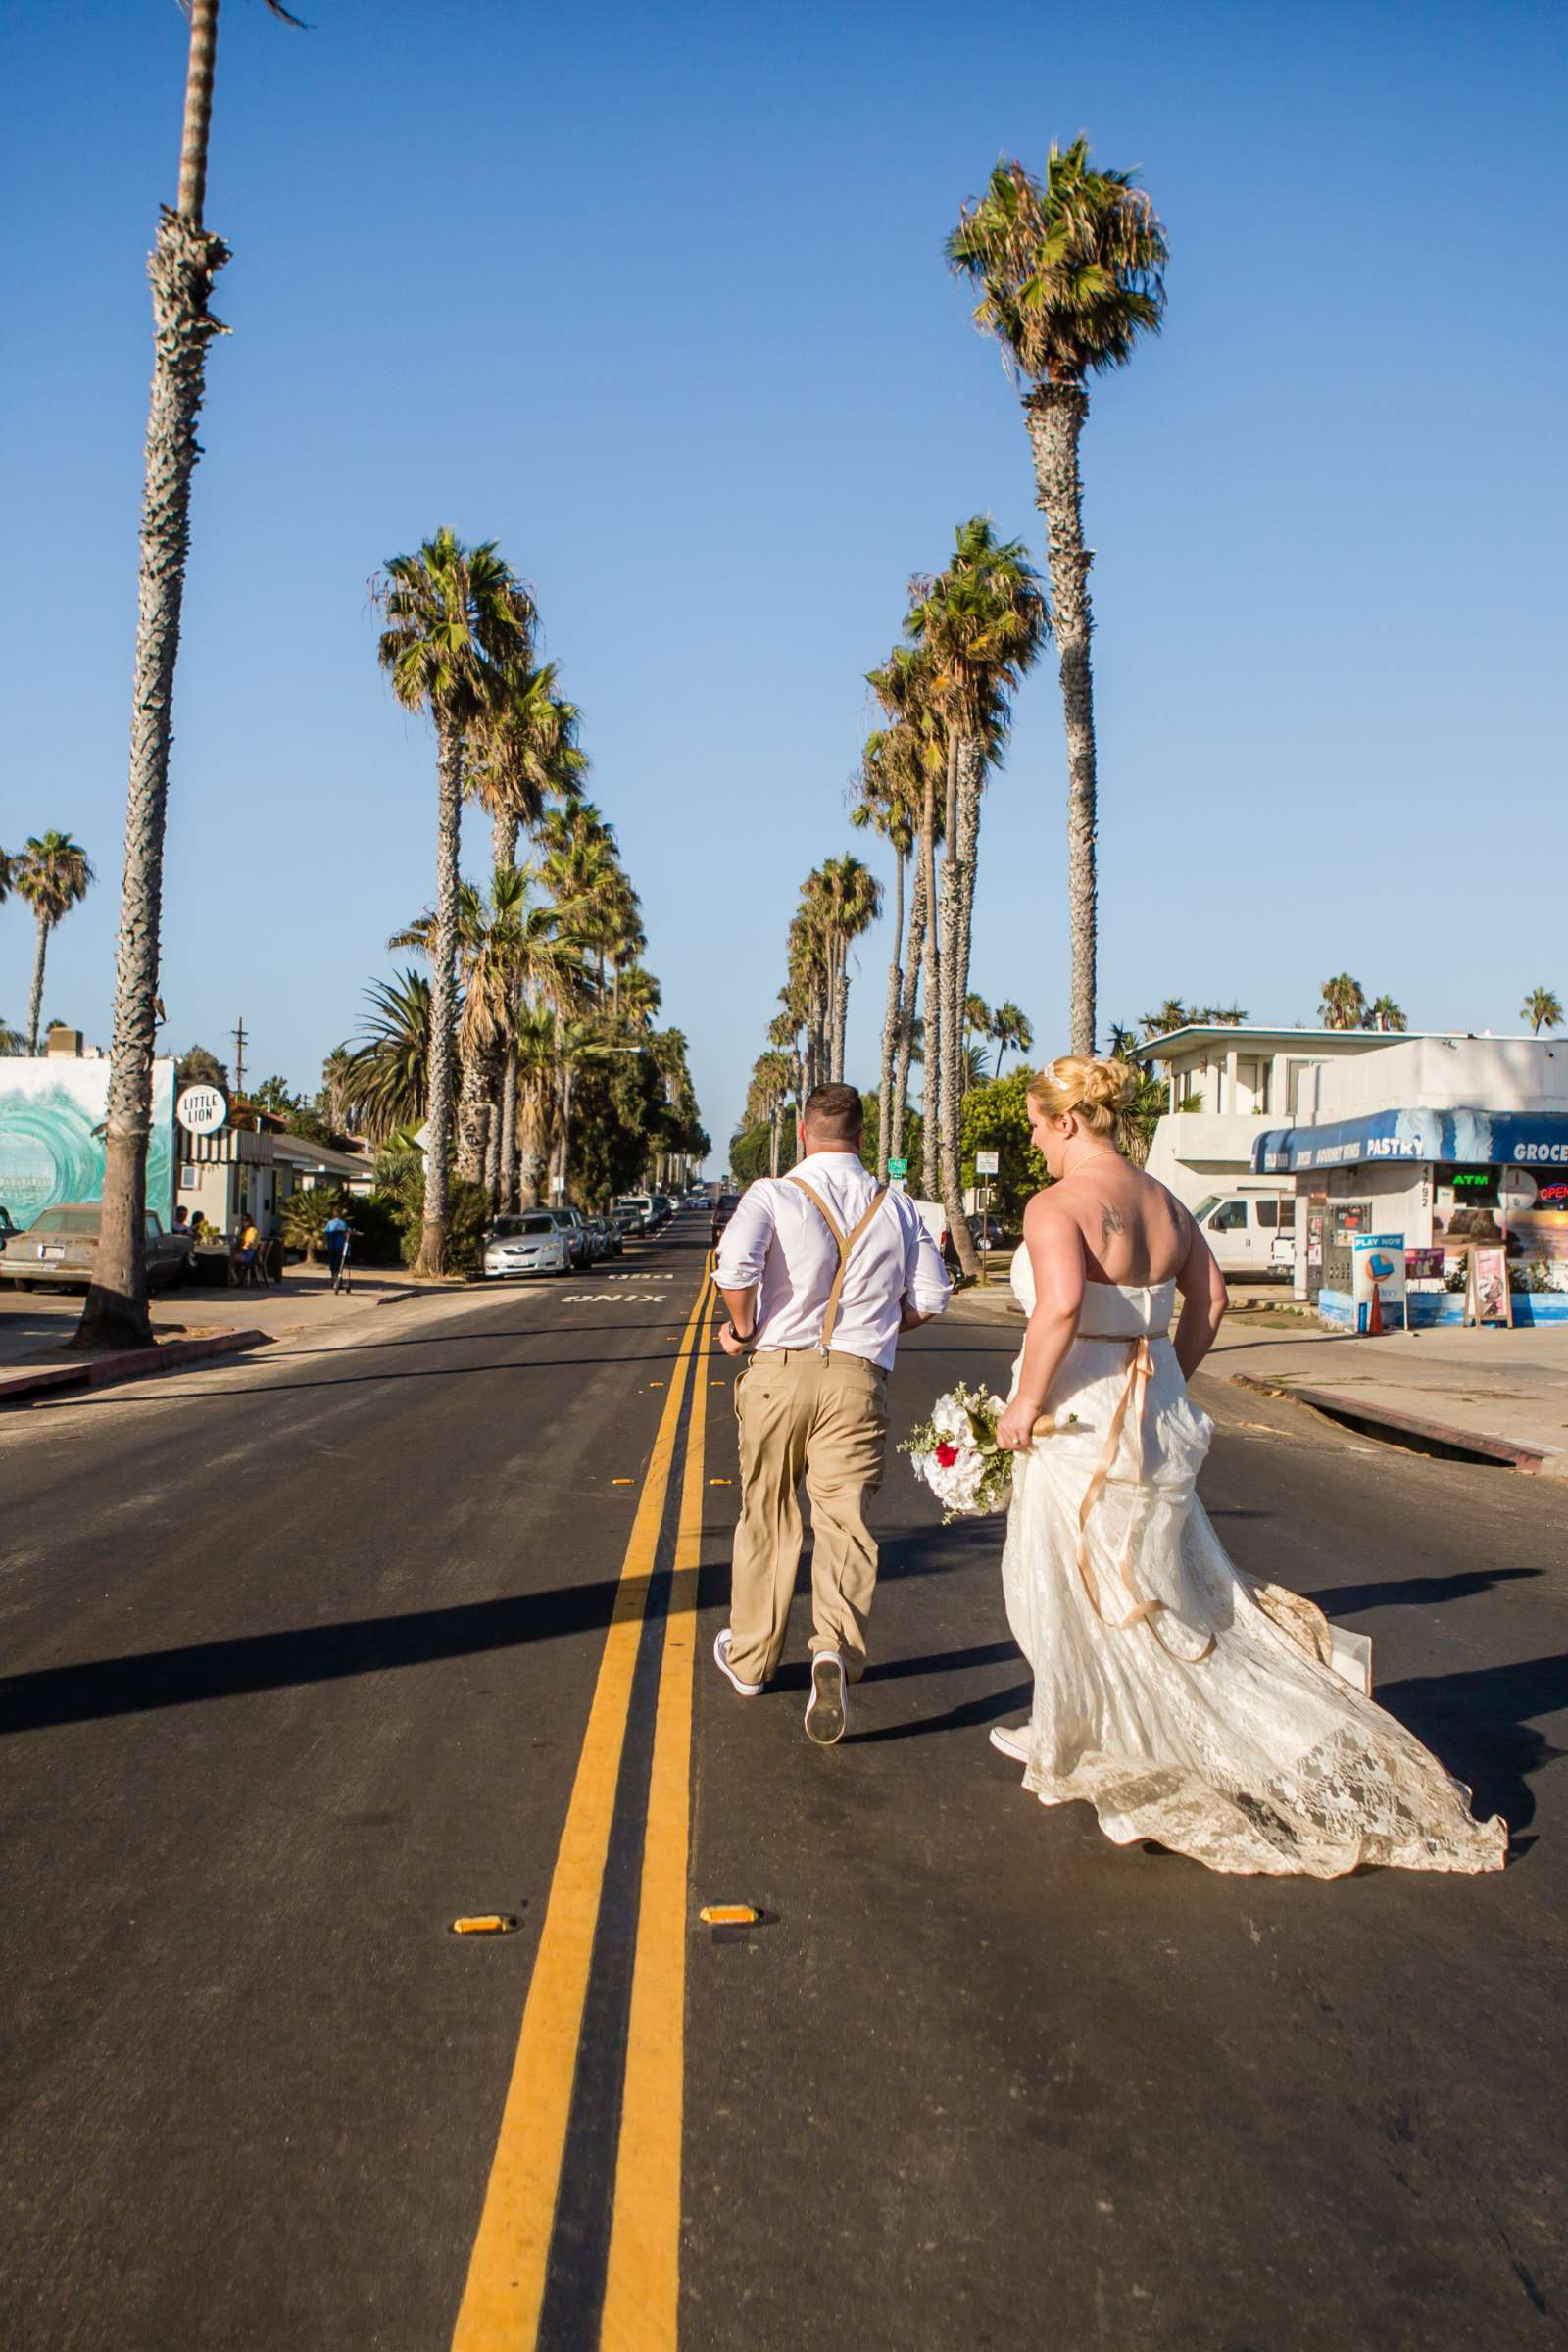 The Inn at Sunset Cliffs Wedding, Melinda and Benjamin Wedding Photo #70 by True Photography